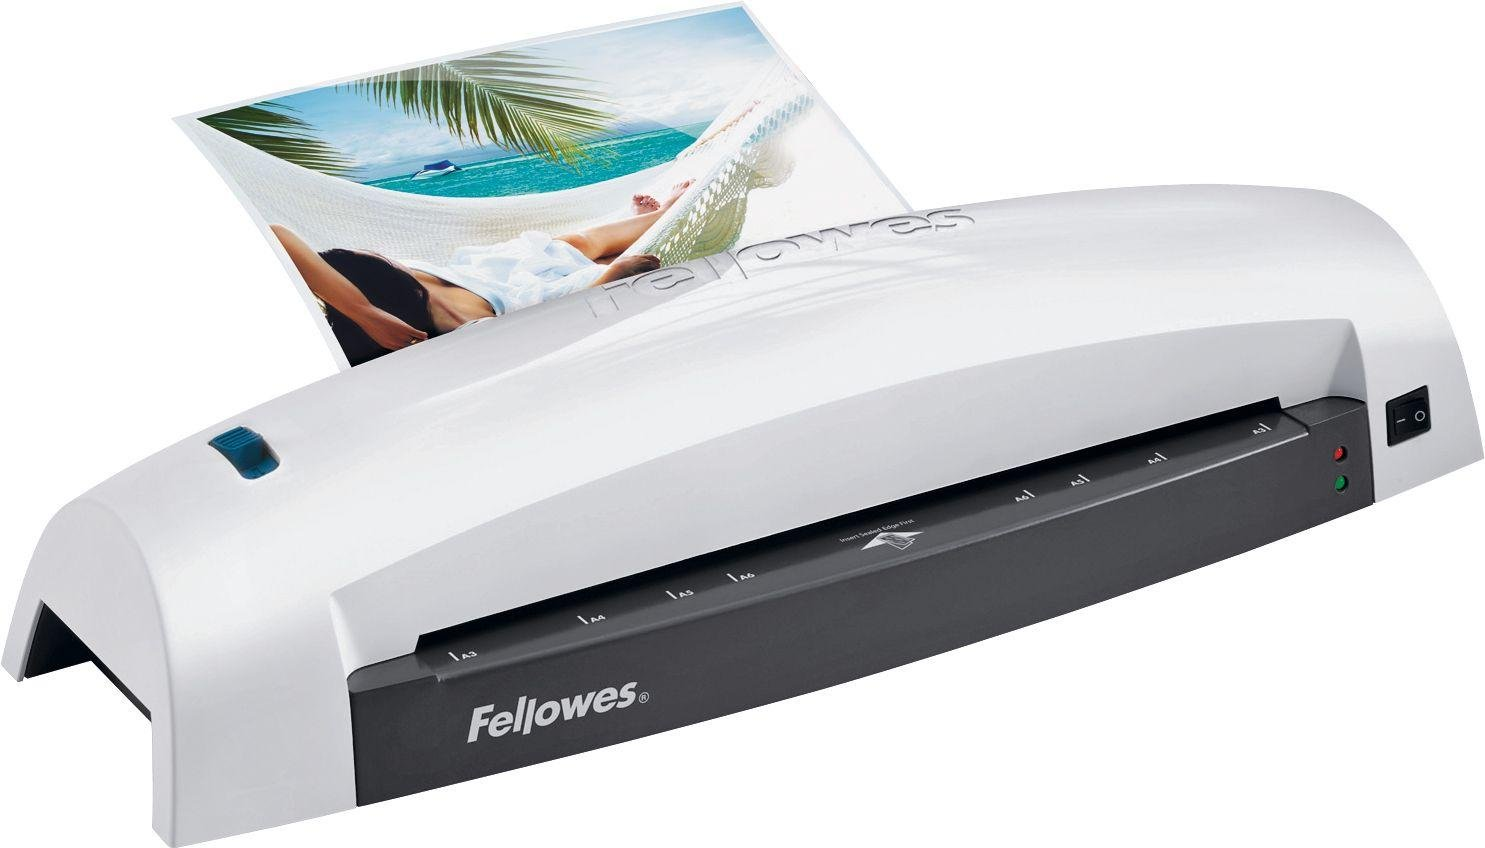 fellowes lunar a4 laminator instructions